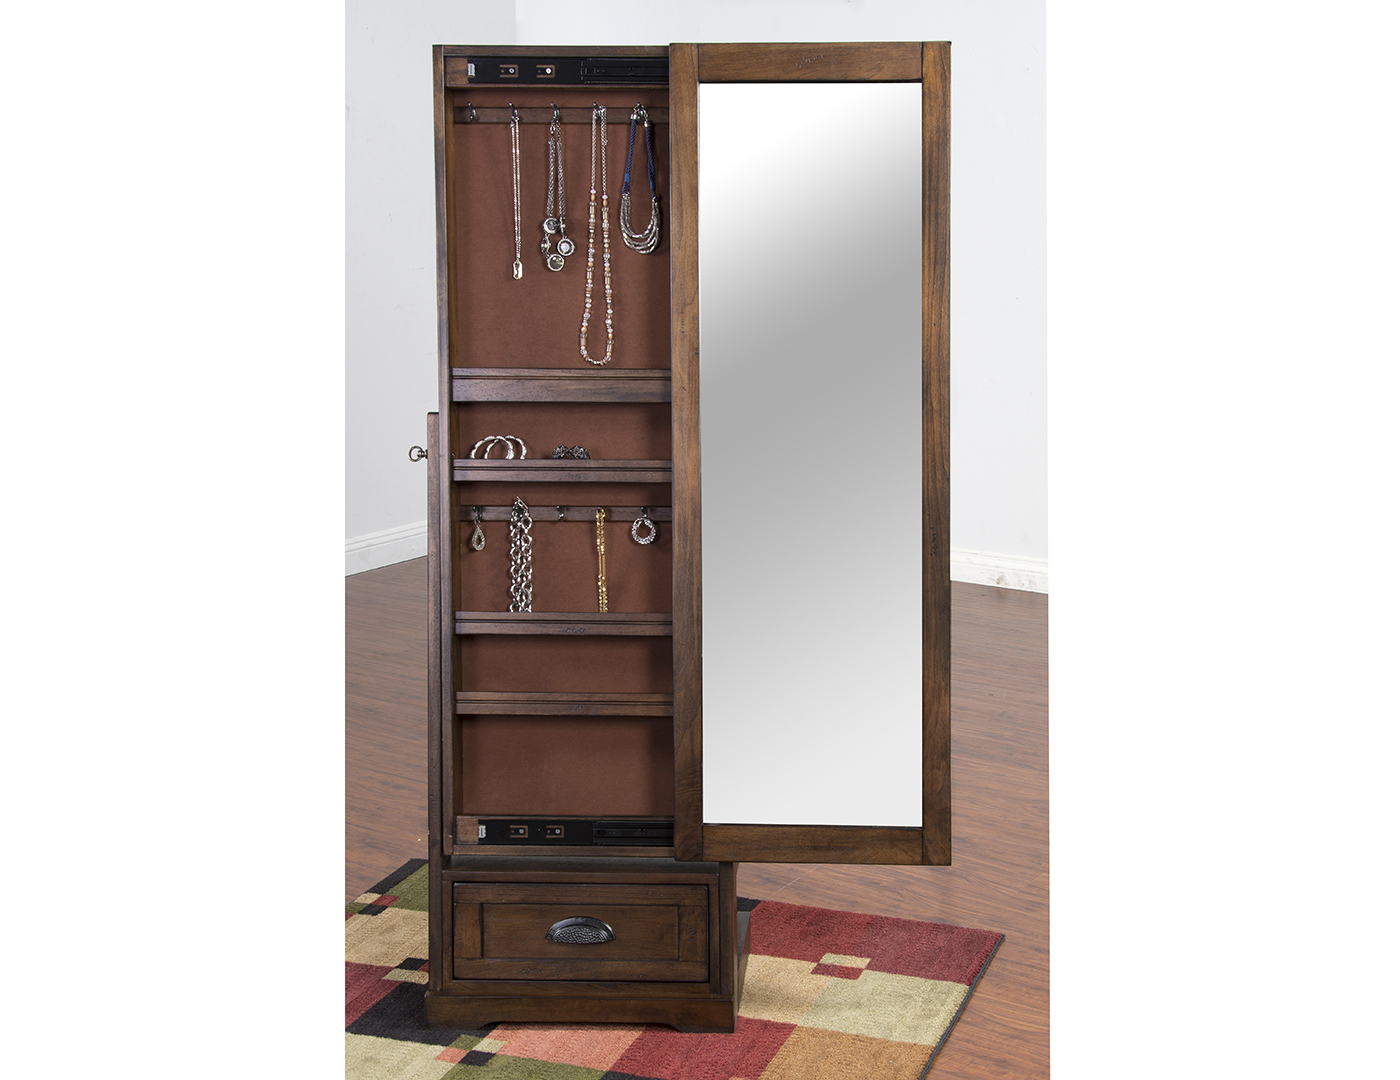 Savannah Jewlery Cabinet